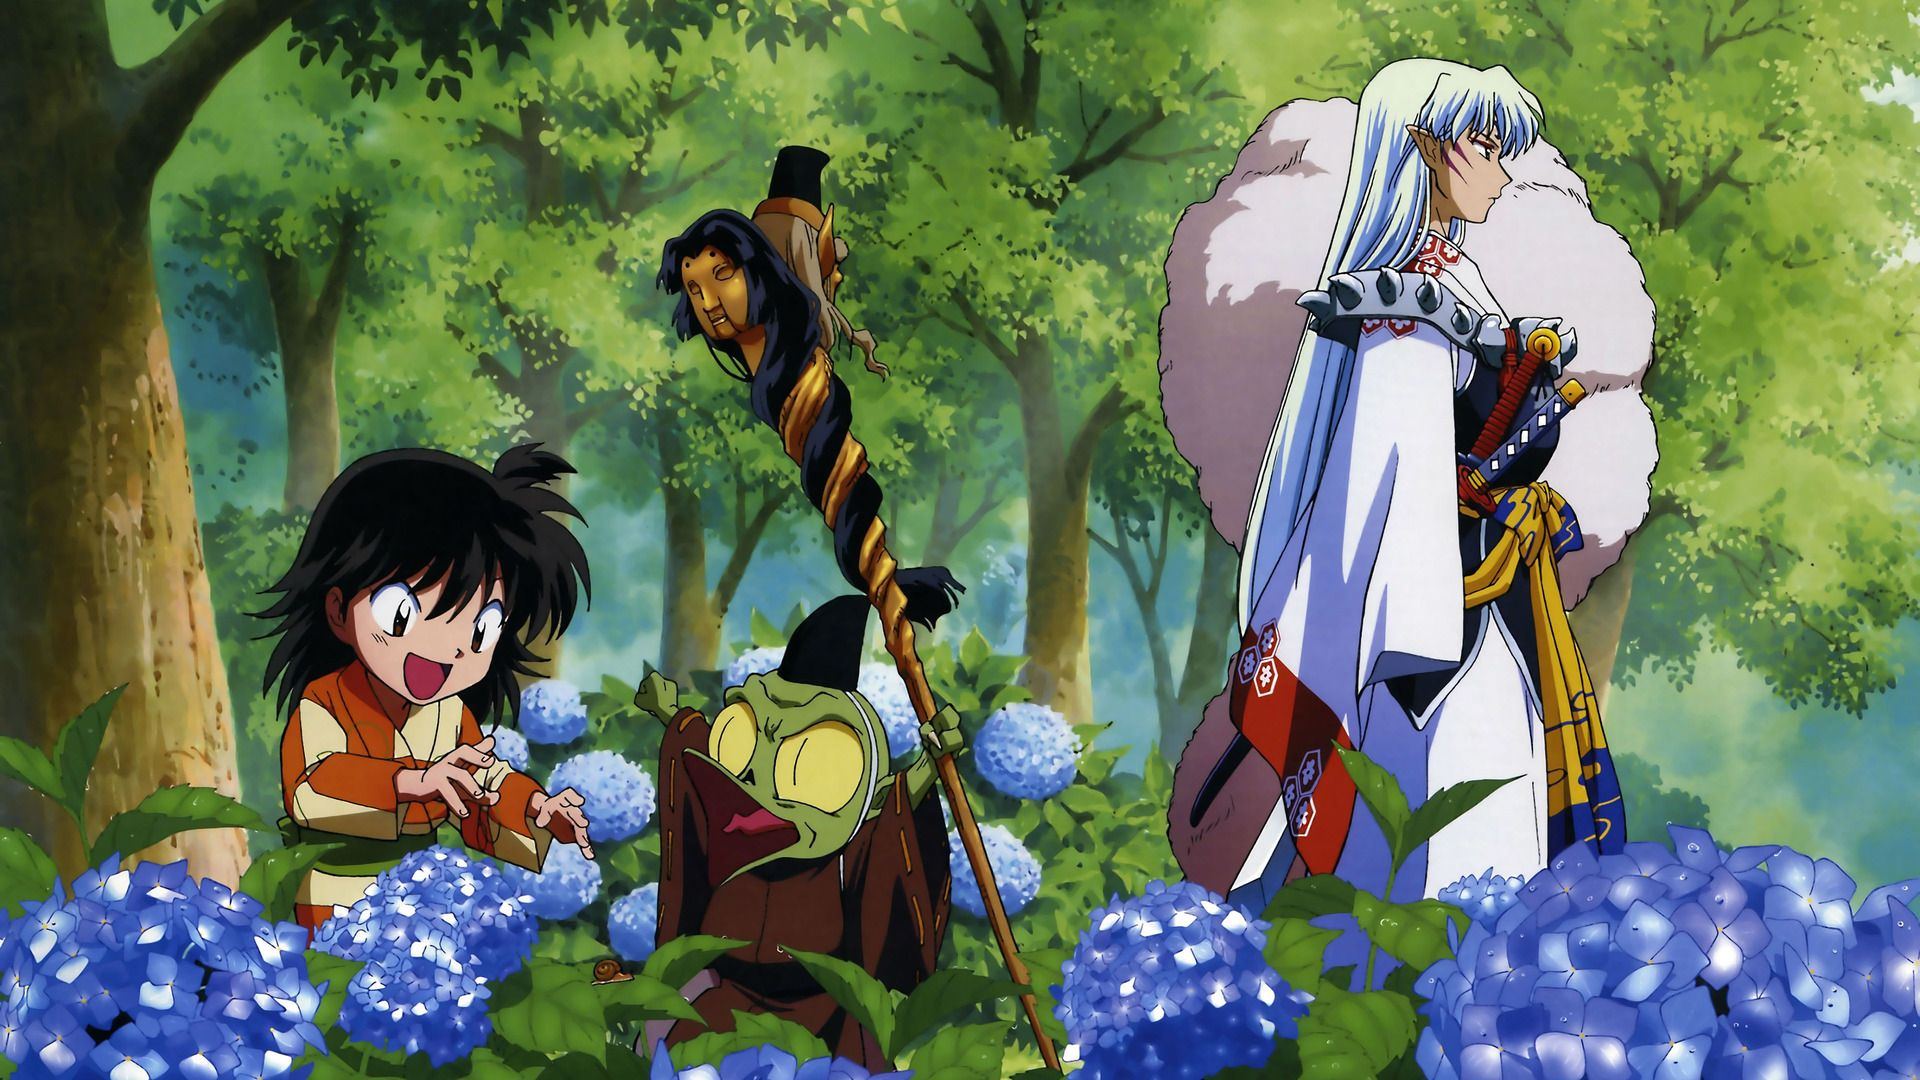 Pin by amora hermosa on Voices Sesshomaru, Wallpaper